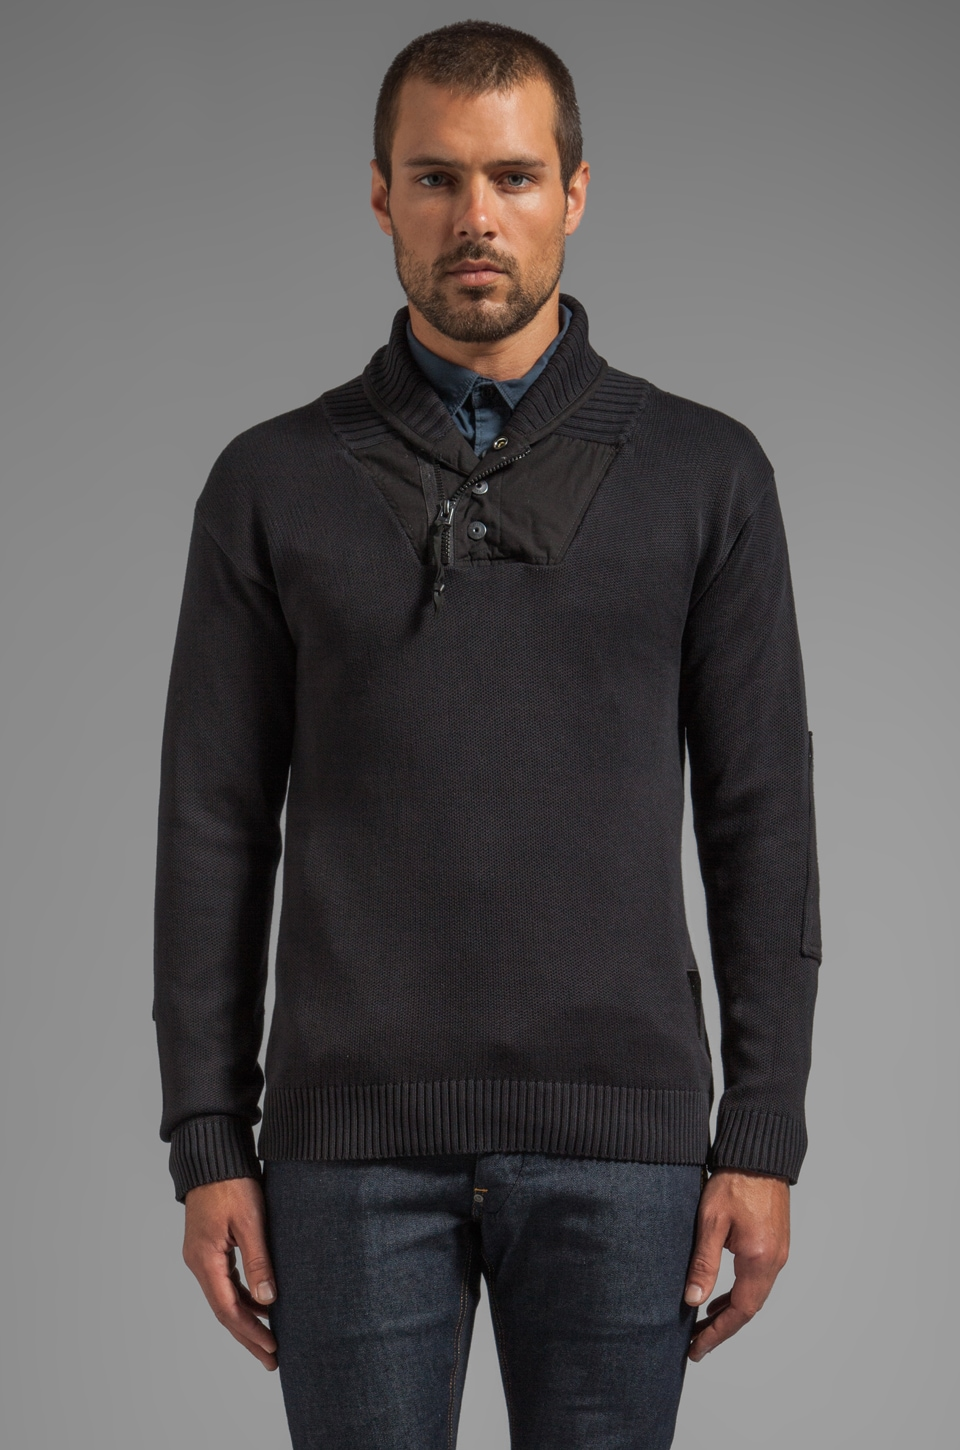 G-Star Process Shawl Collar Knit in Black